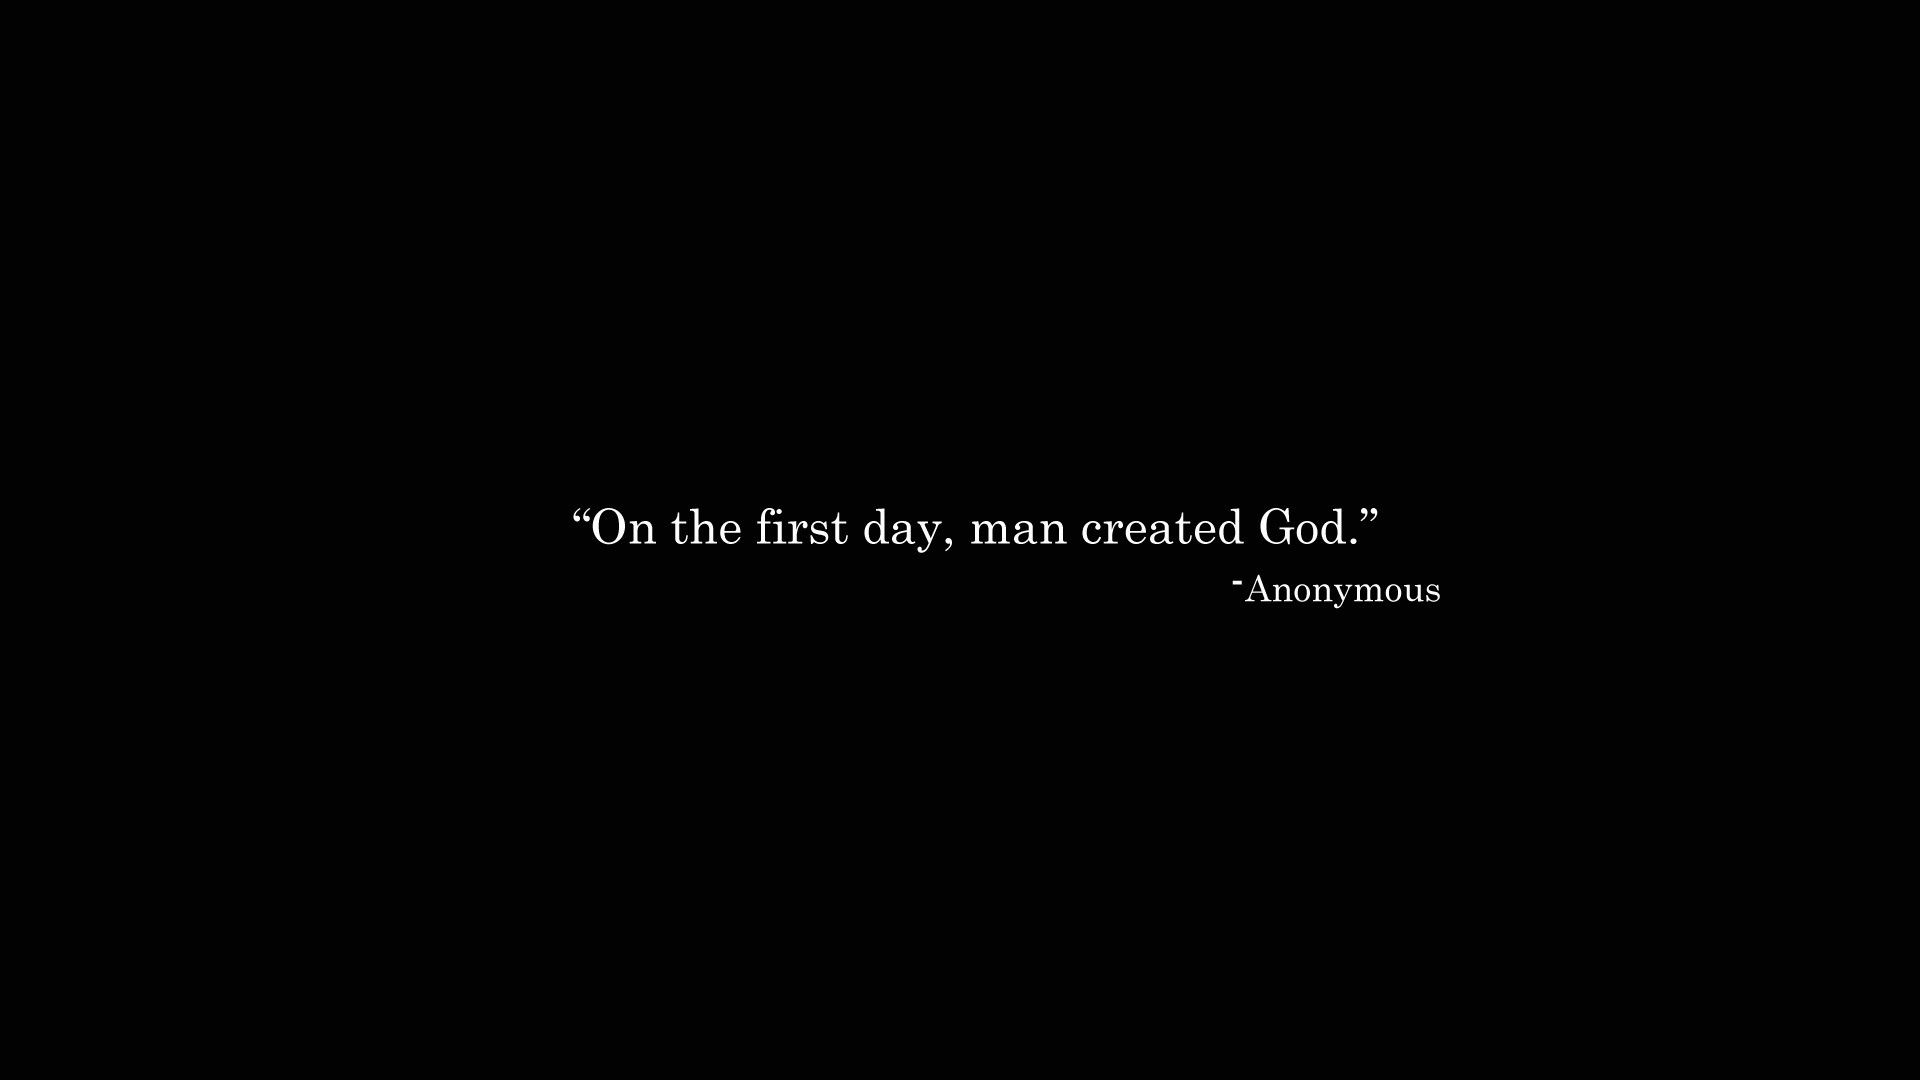 Gentil On The First Day, Man Created God Wallpaper, On The First Day, Man Created  God Typography HD Desktop Wallpaper